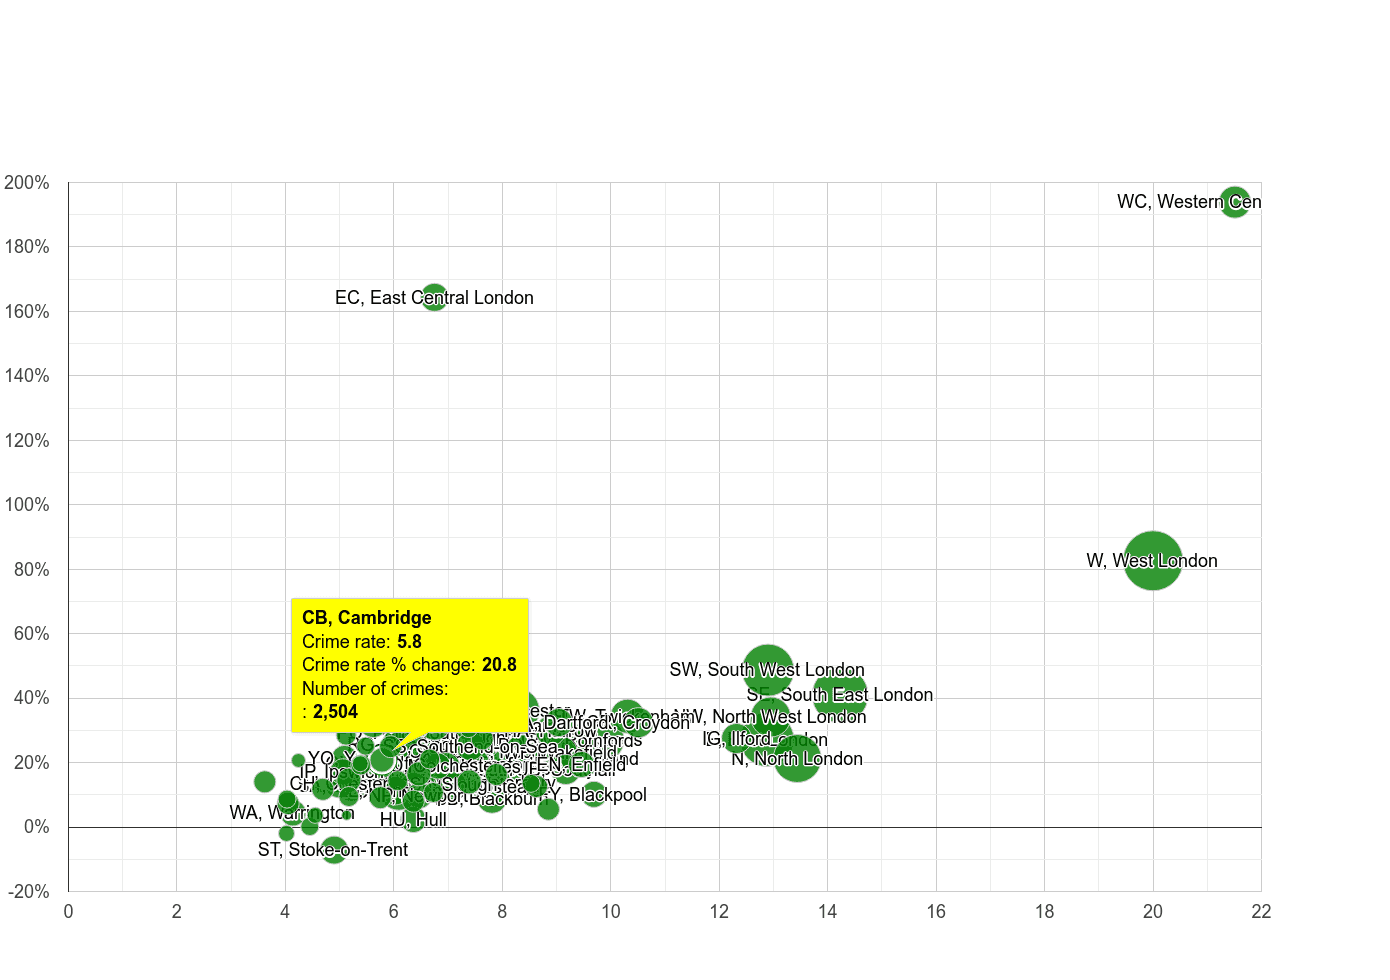 Cambridge other theft crime rate compared to other areas